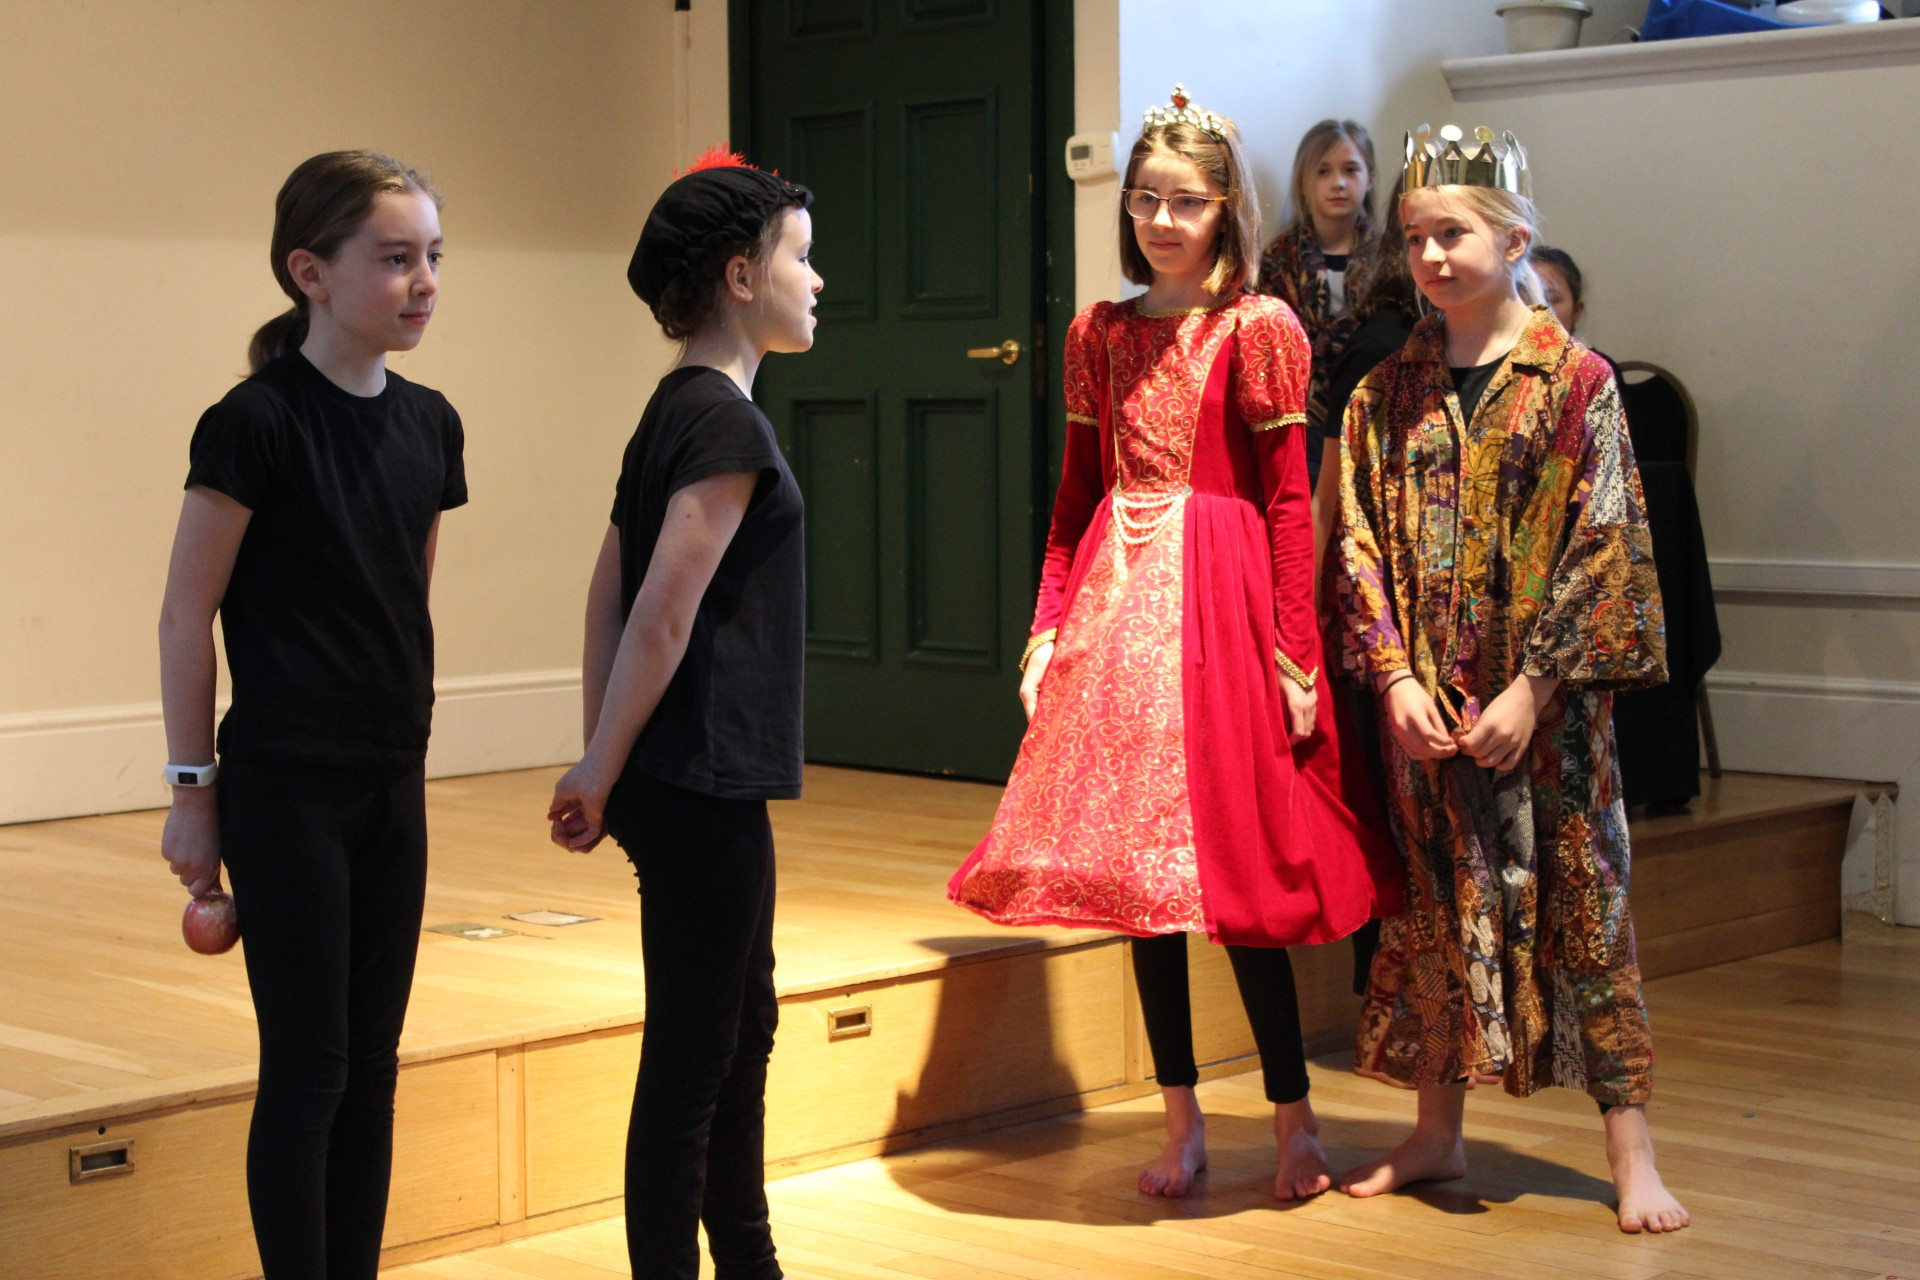 'The Play's The Thing' for Form 6 class assembly